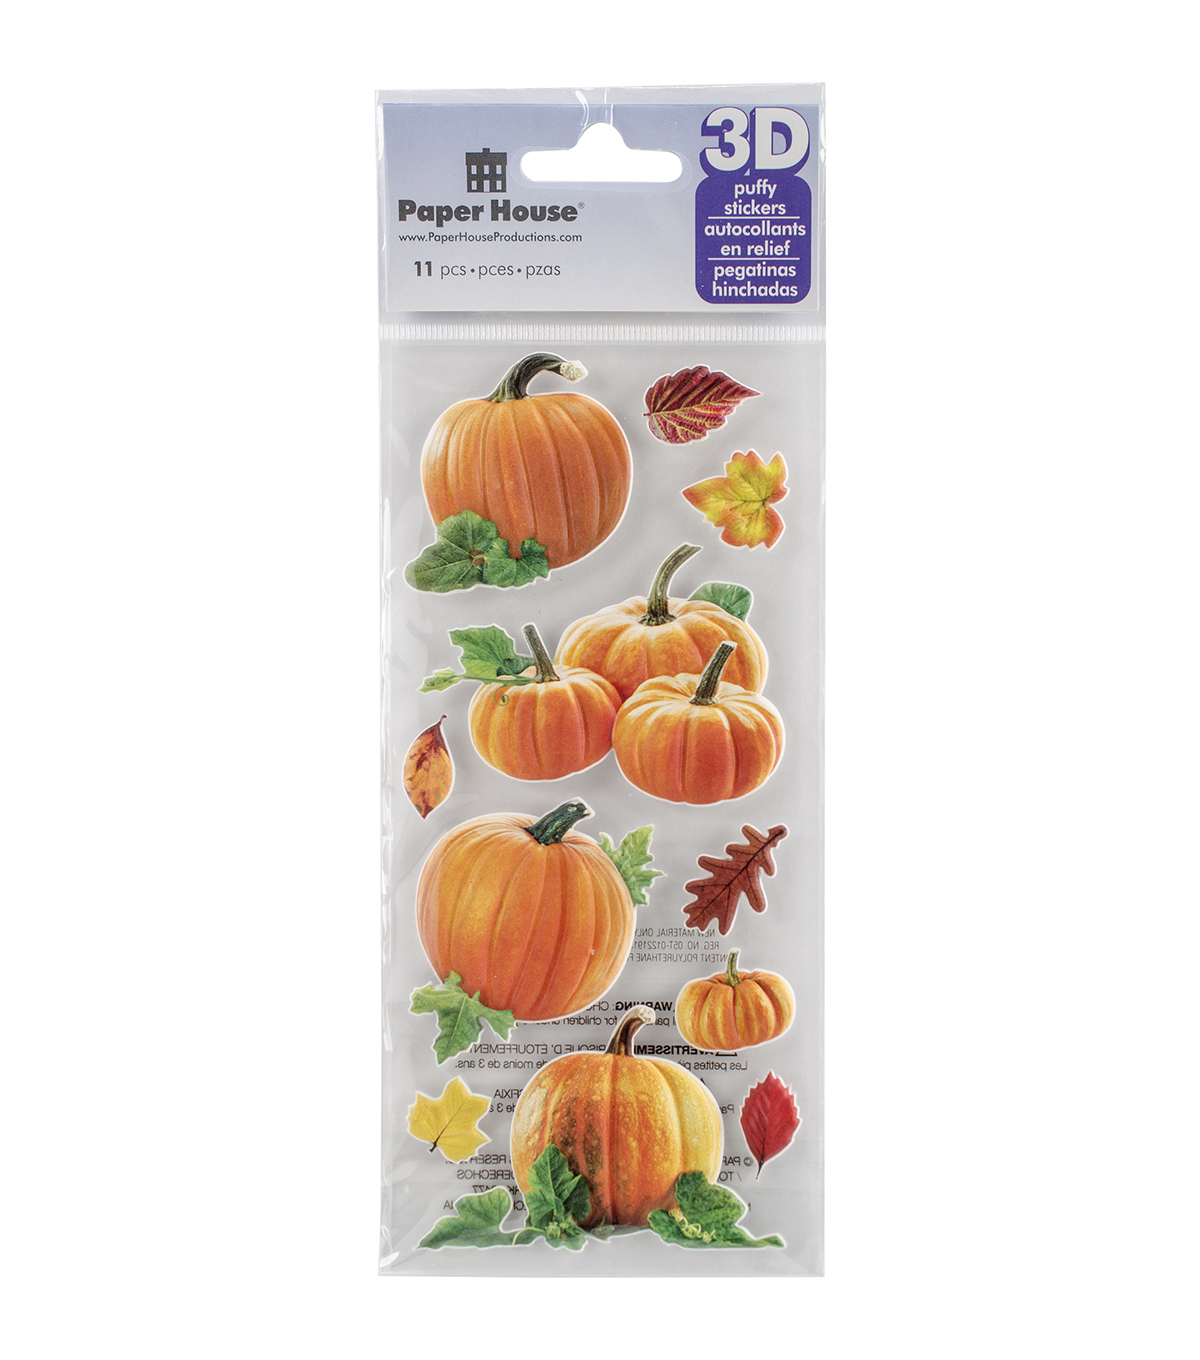 Paper House® Puffy Stickers-Pumpkins